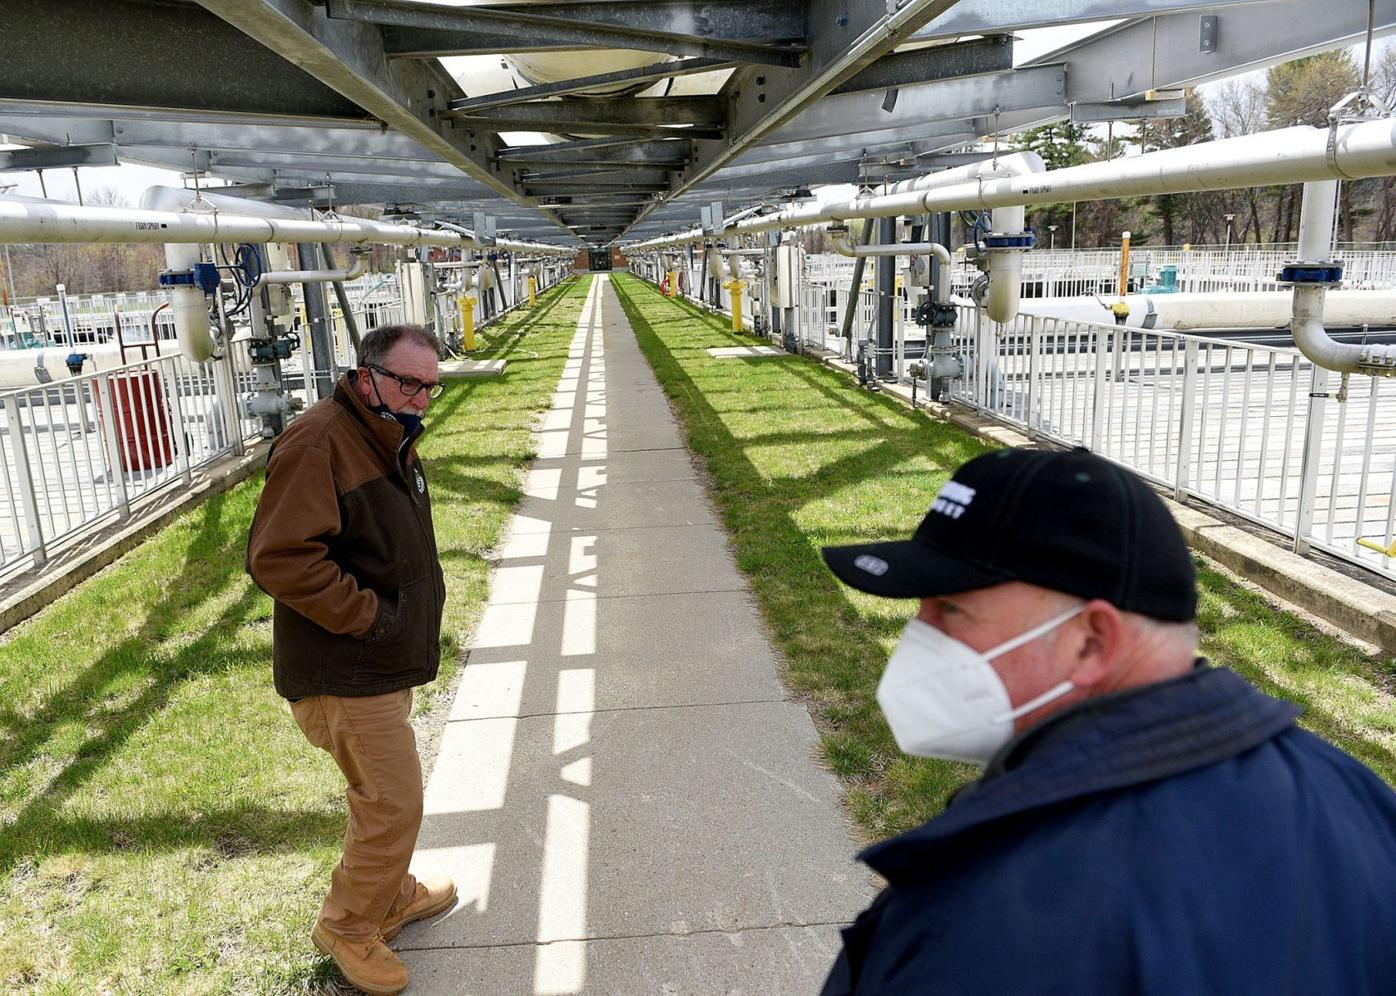 Tour of Manchester's wastewater treatment plant